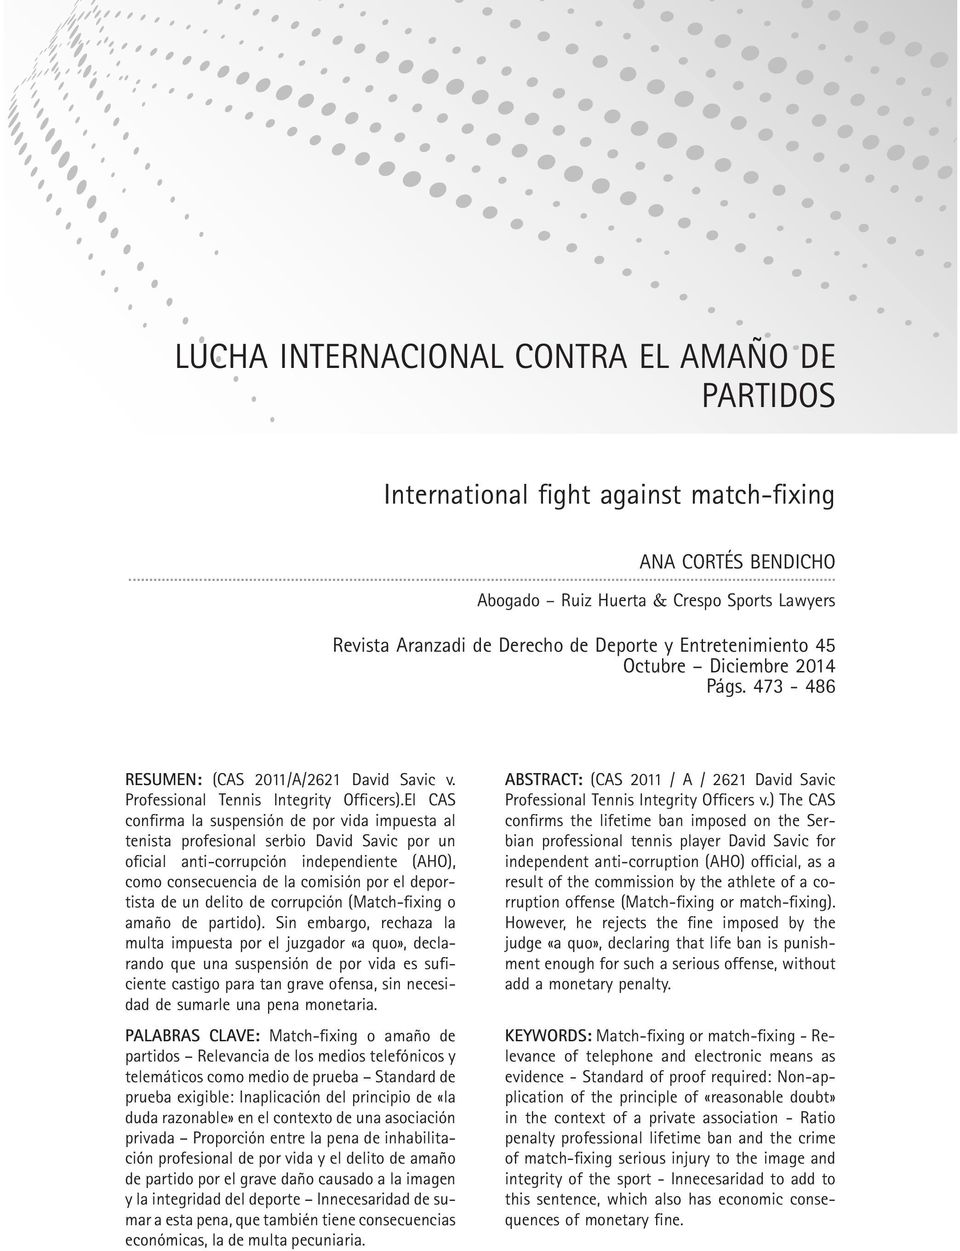 ABSTRACT: (CAS 2011 / A / 2621 David Savic Professional Tennis Integrity Officers).El CAS Professional Tennis Integrity Officers v.